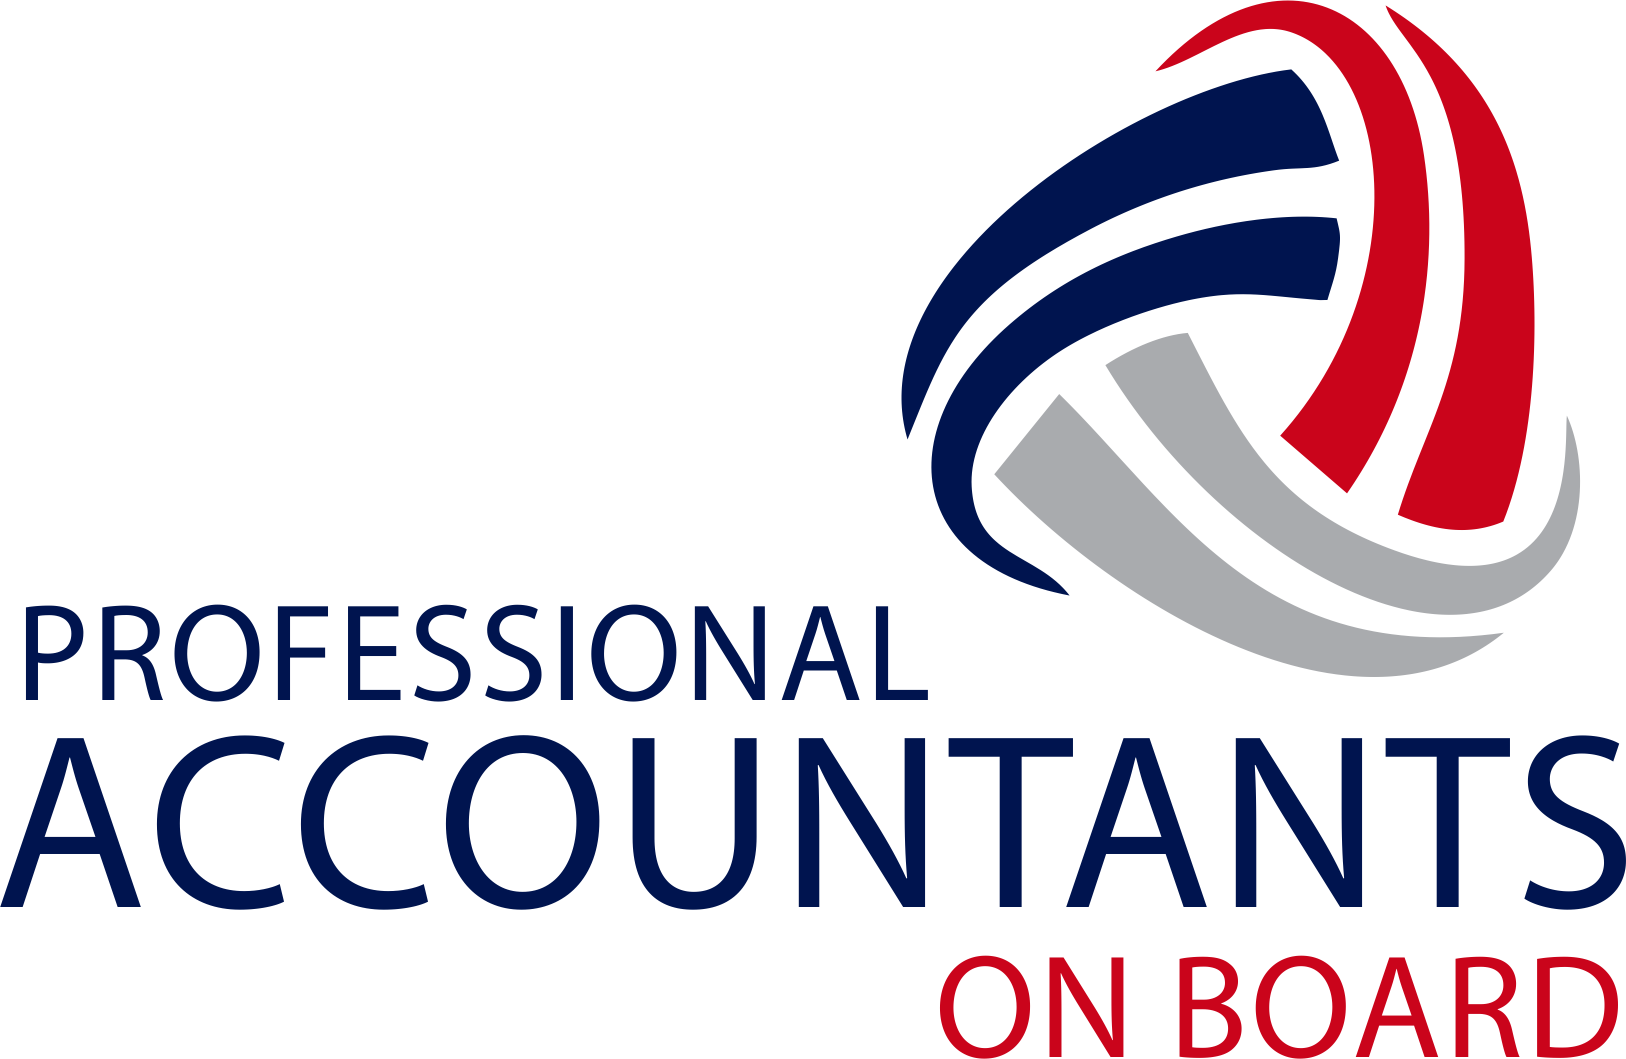 Professional Accountants on Board